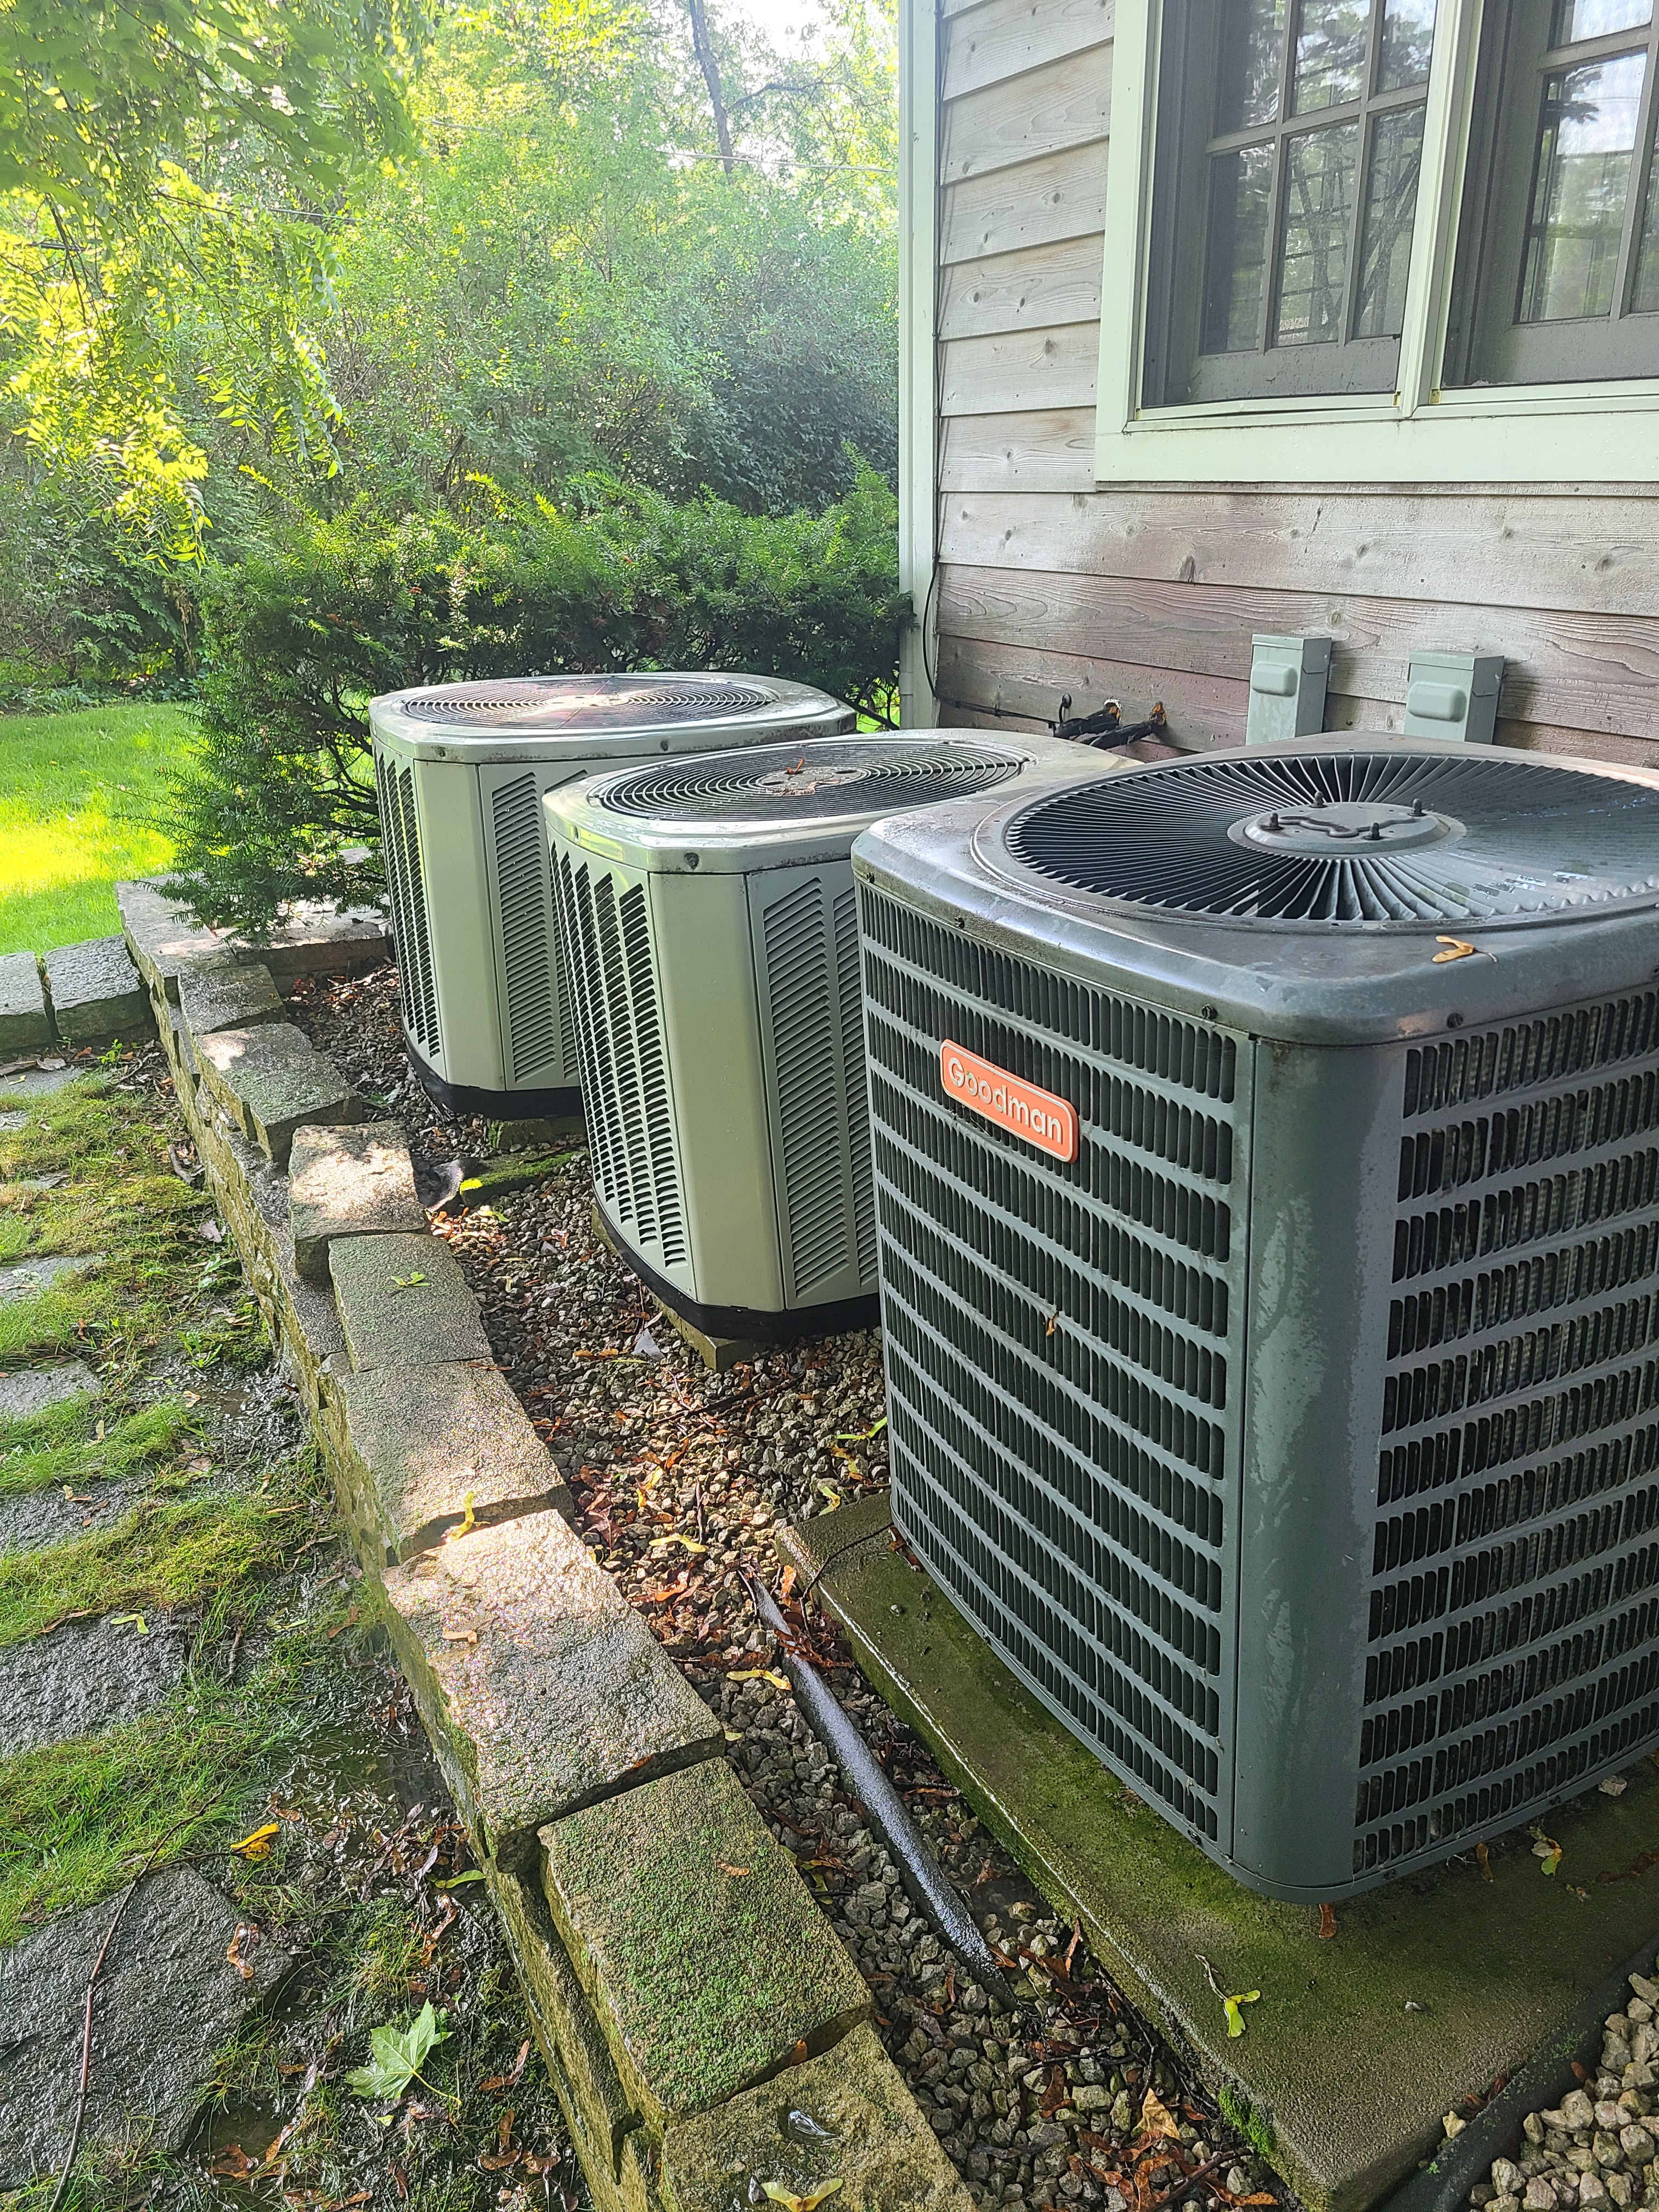 Performed preventative maintenance on one Goodman R22 system and two Trane American Standard R410A systems to extend the life of all 3 units. Checked voltage, amperage, temperatures, pressures, and microfarads. Washed all three condenser coils.